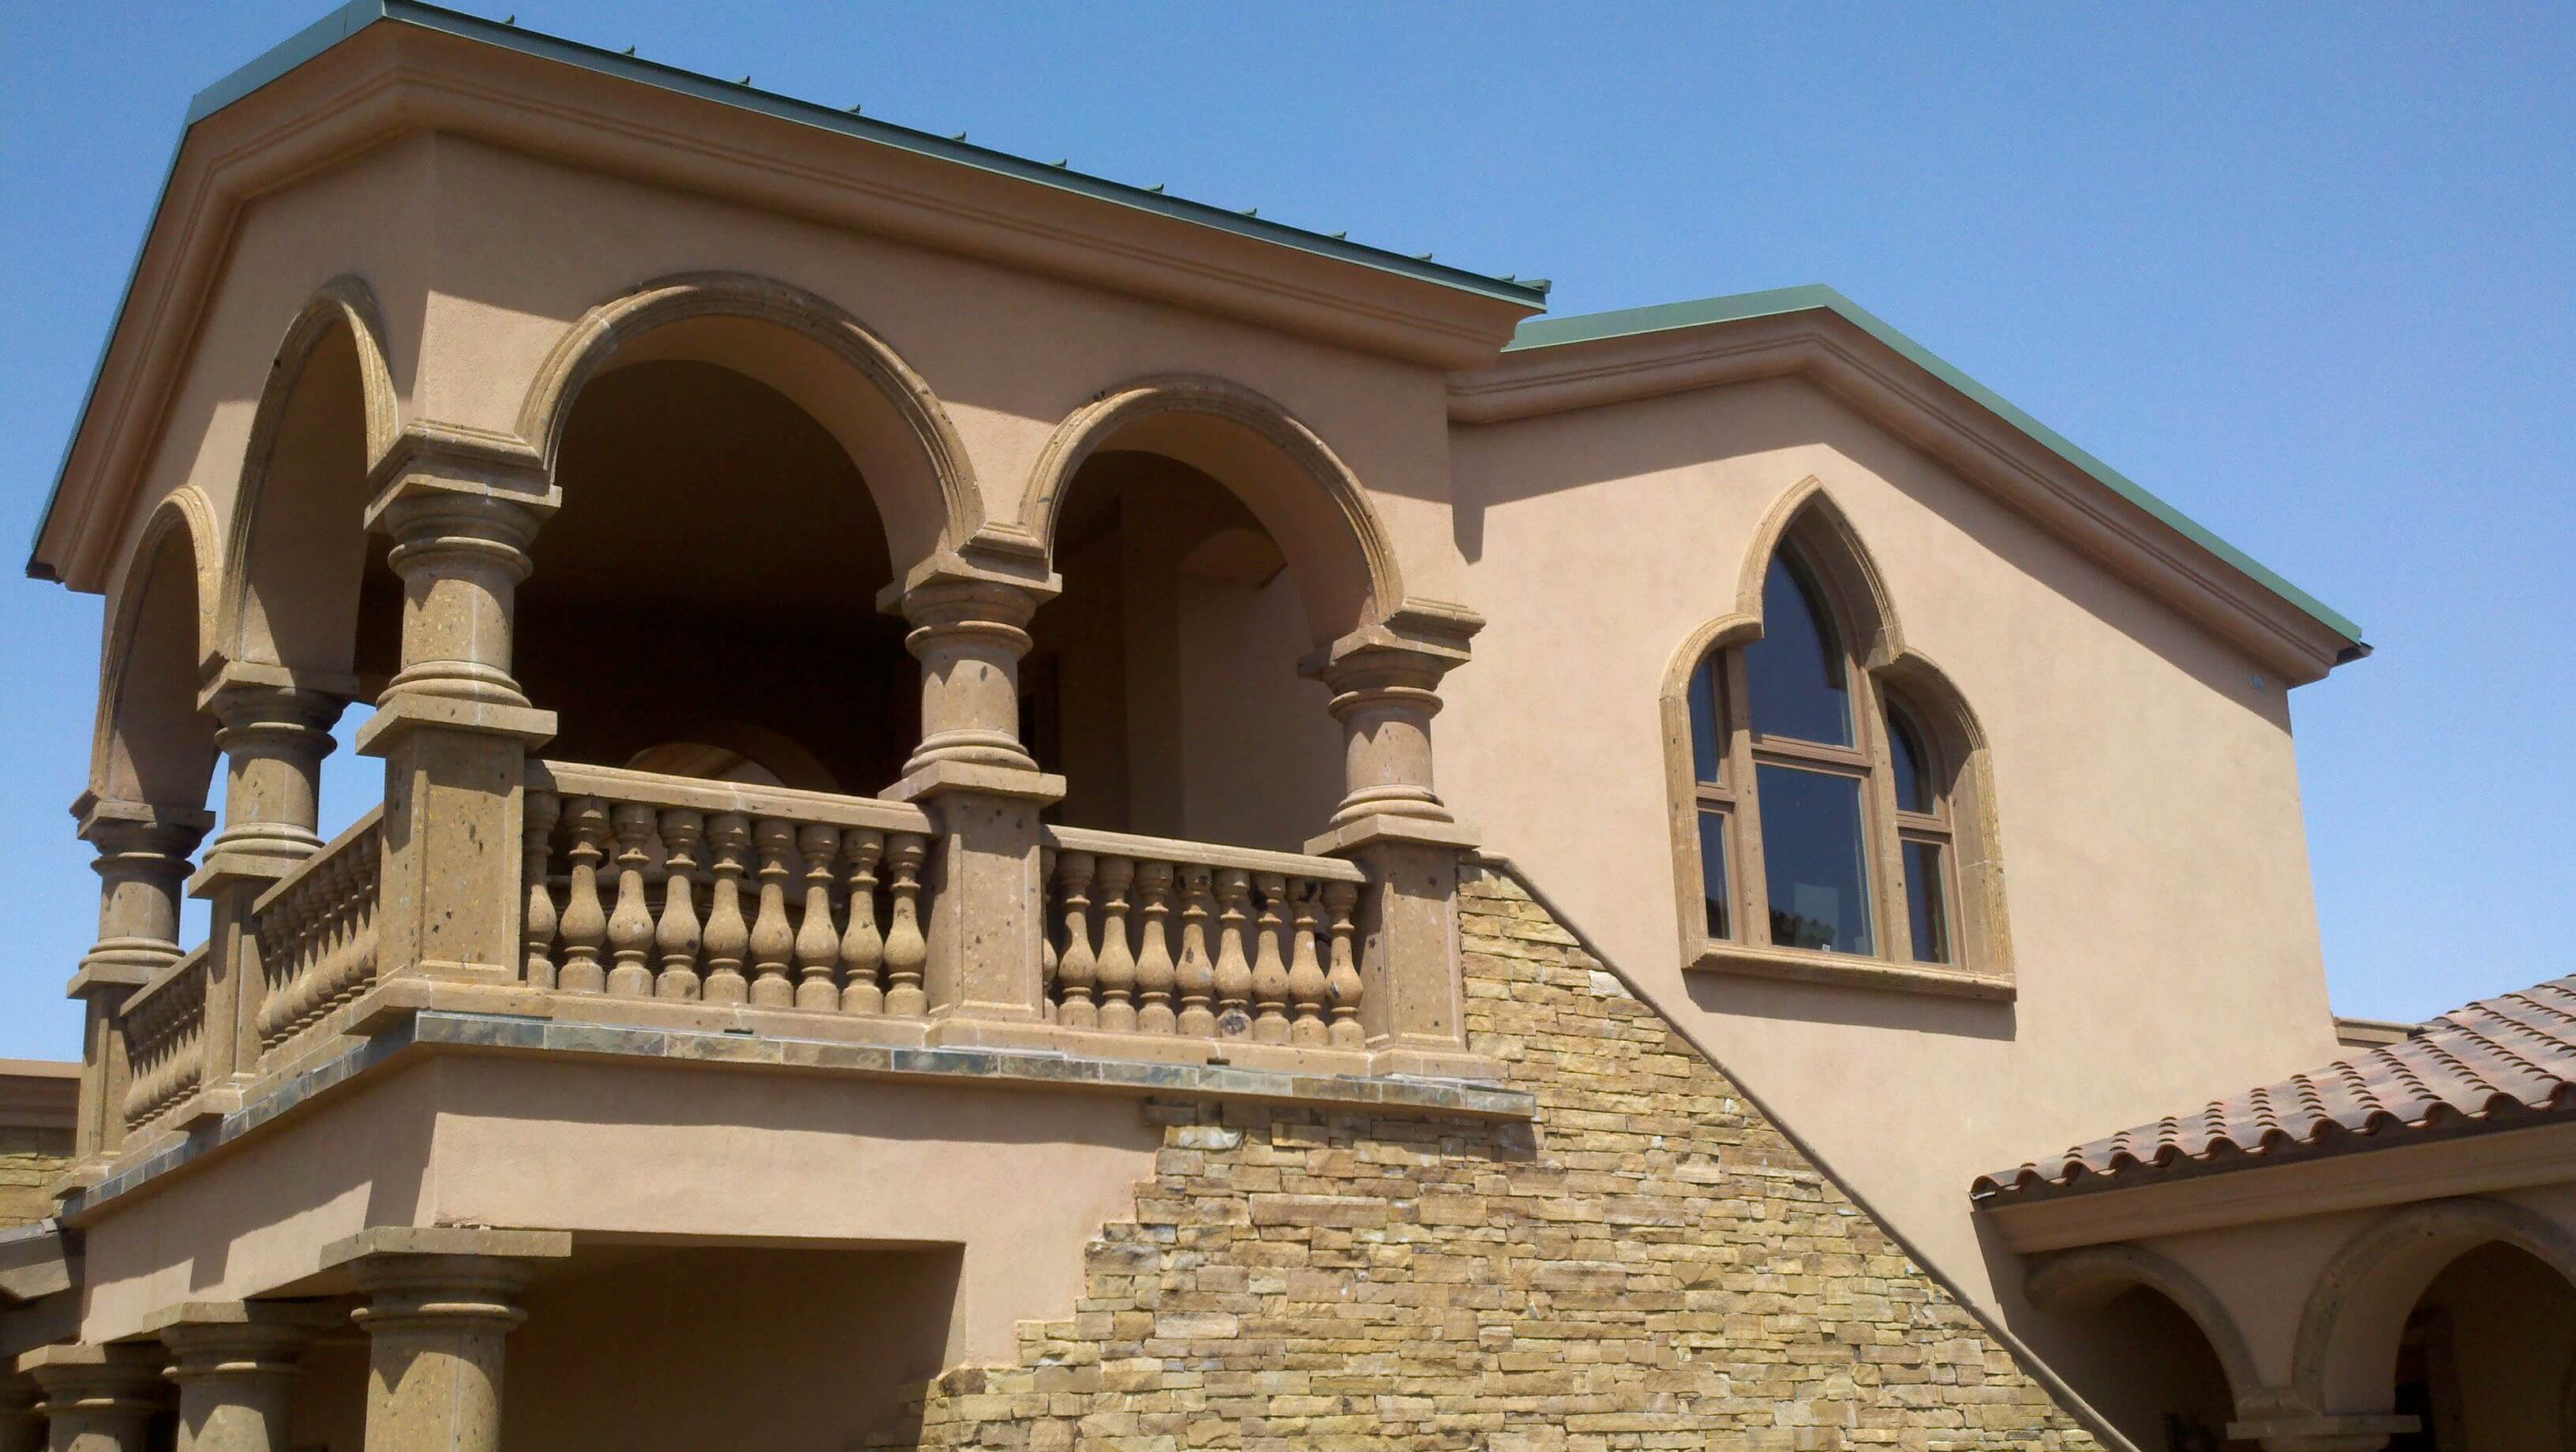 4-Transitional-Mediterranean-Balcony-Balustrade-Railing-System-with-pier-cap-posts-in-Tobacco-canter